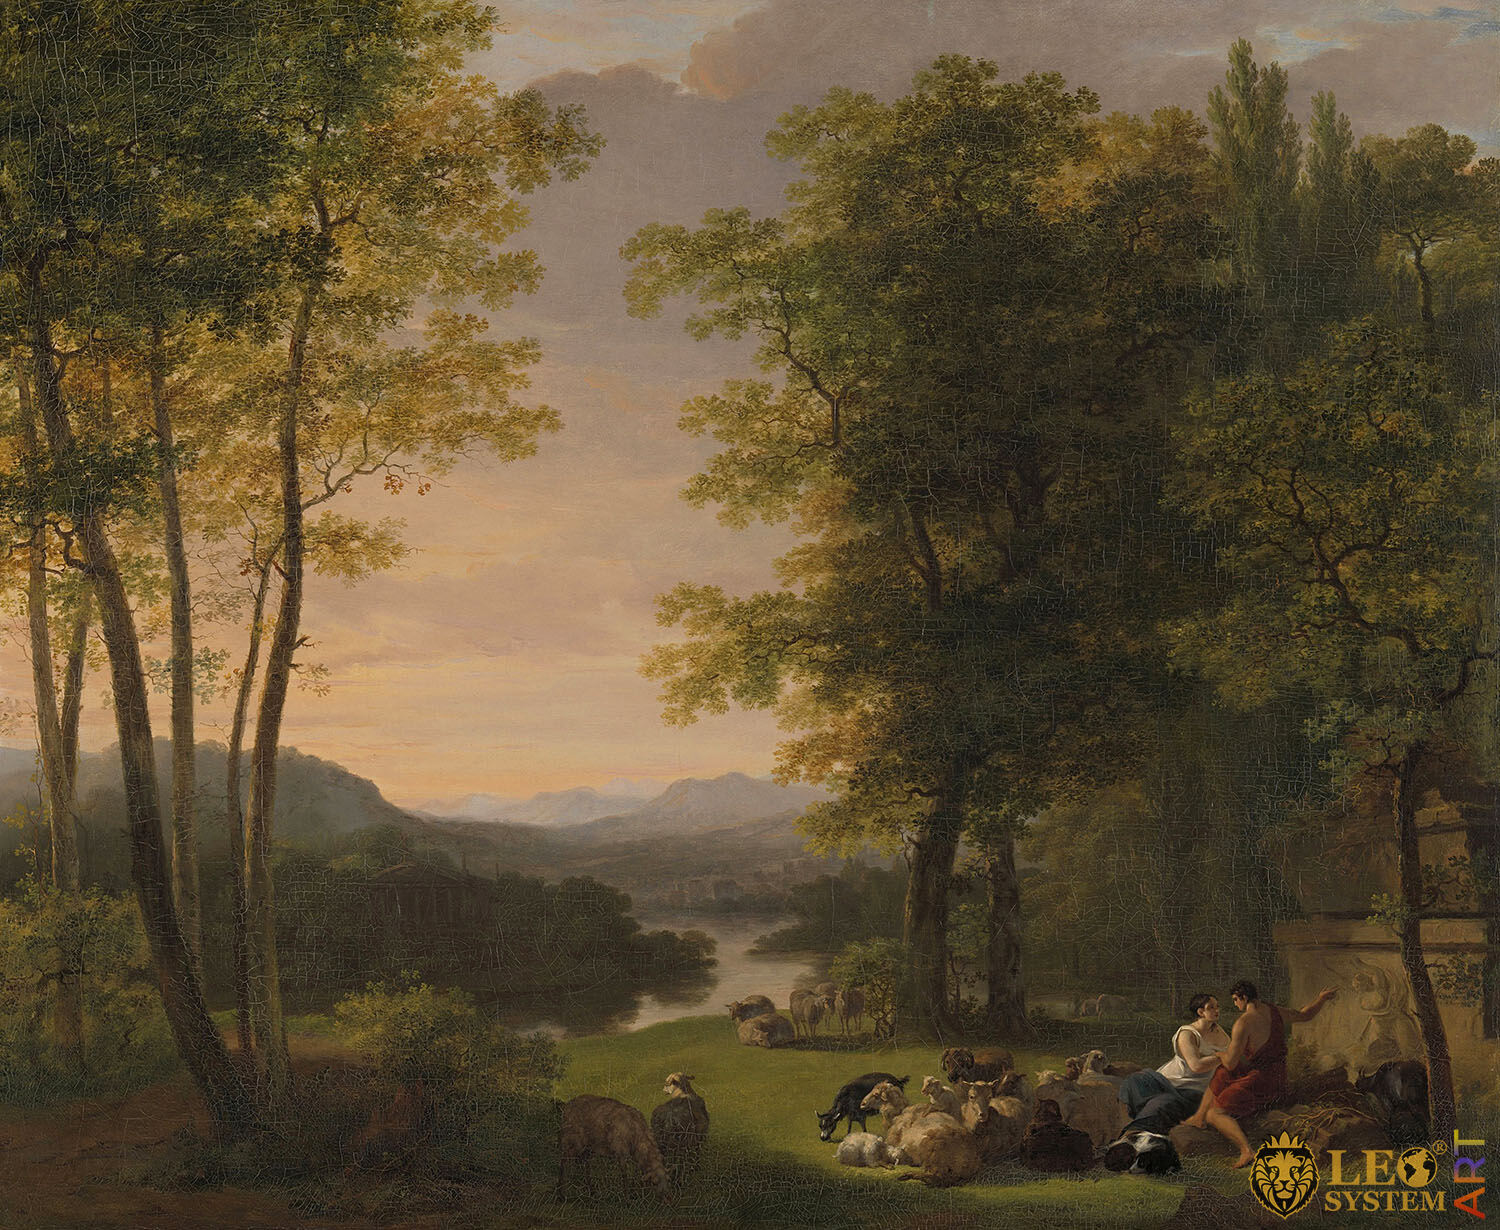 Arcadian Landscape, Painter: Jan Willem Pieneman, 1813, Dutch Painting, Original Painting